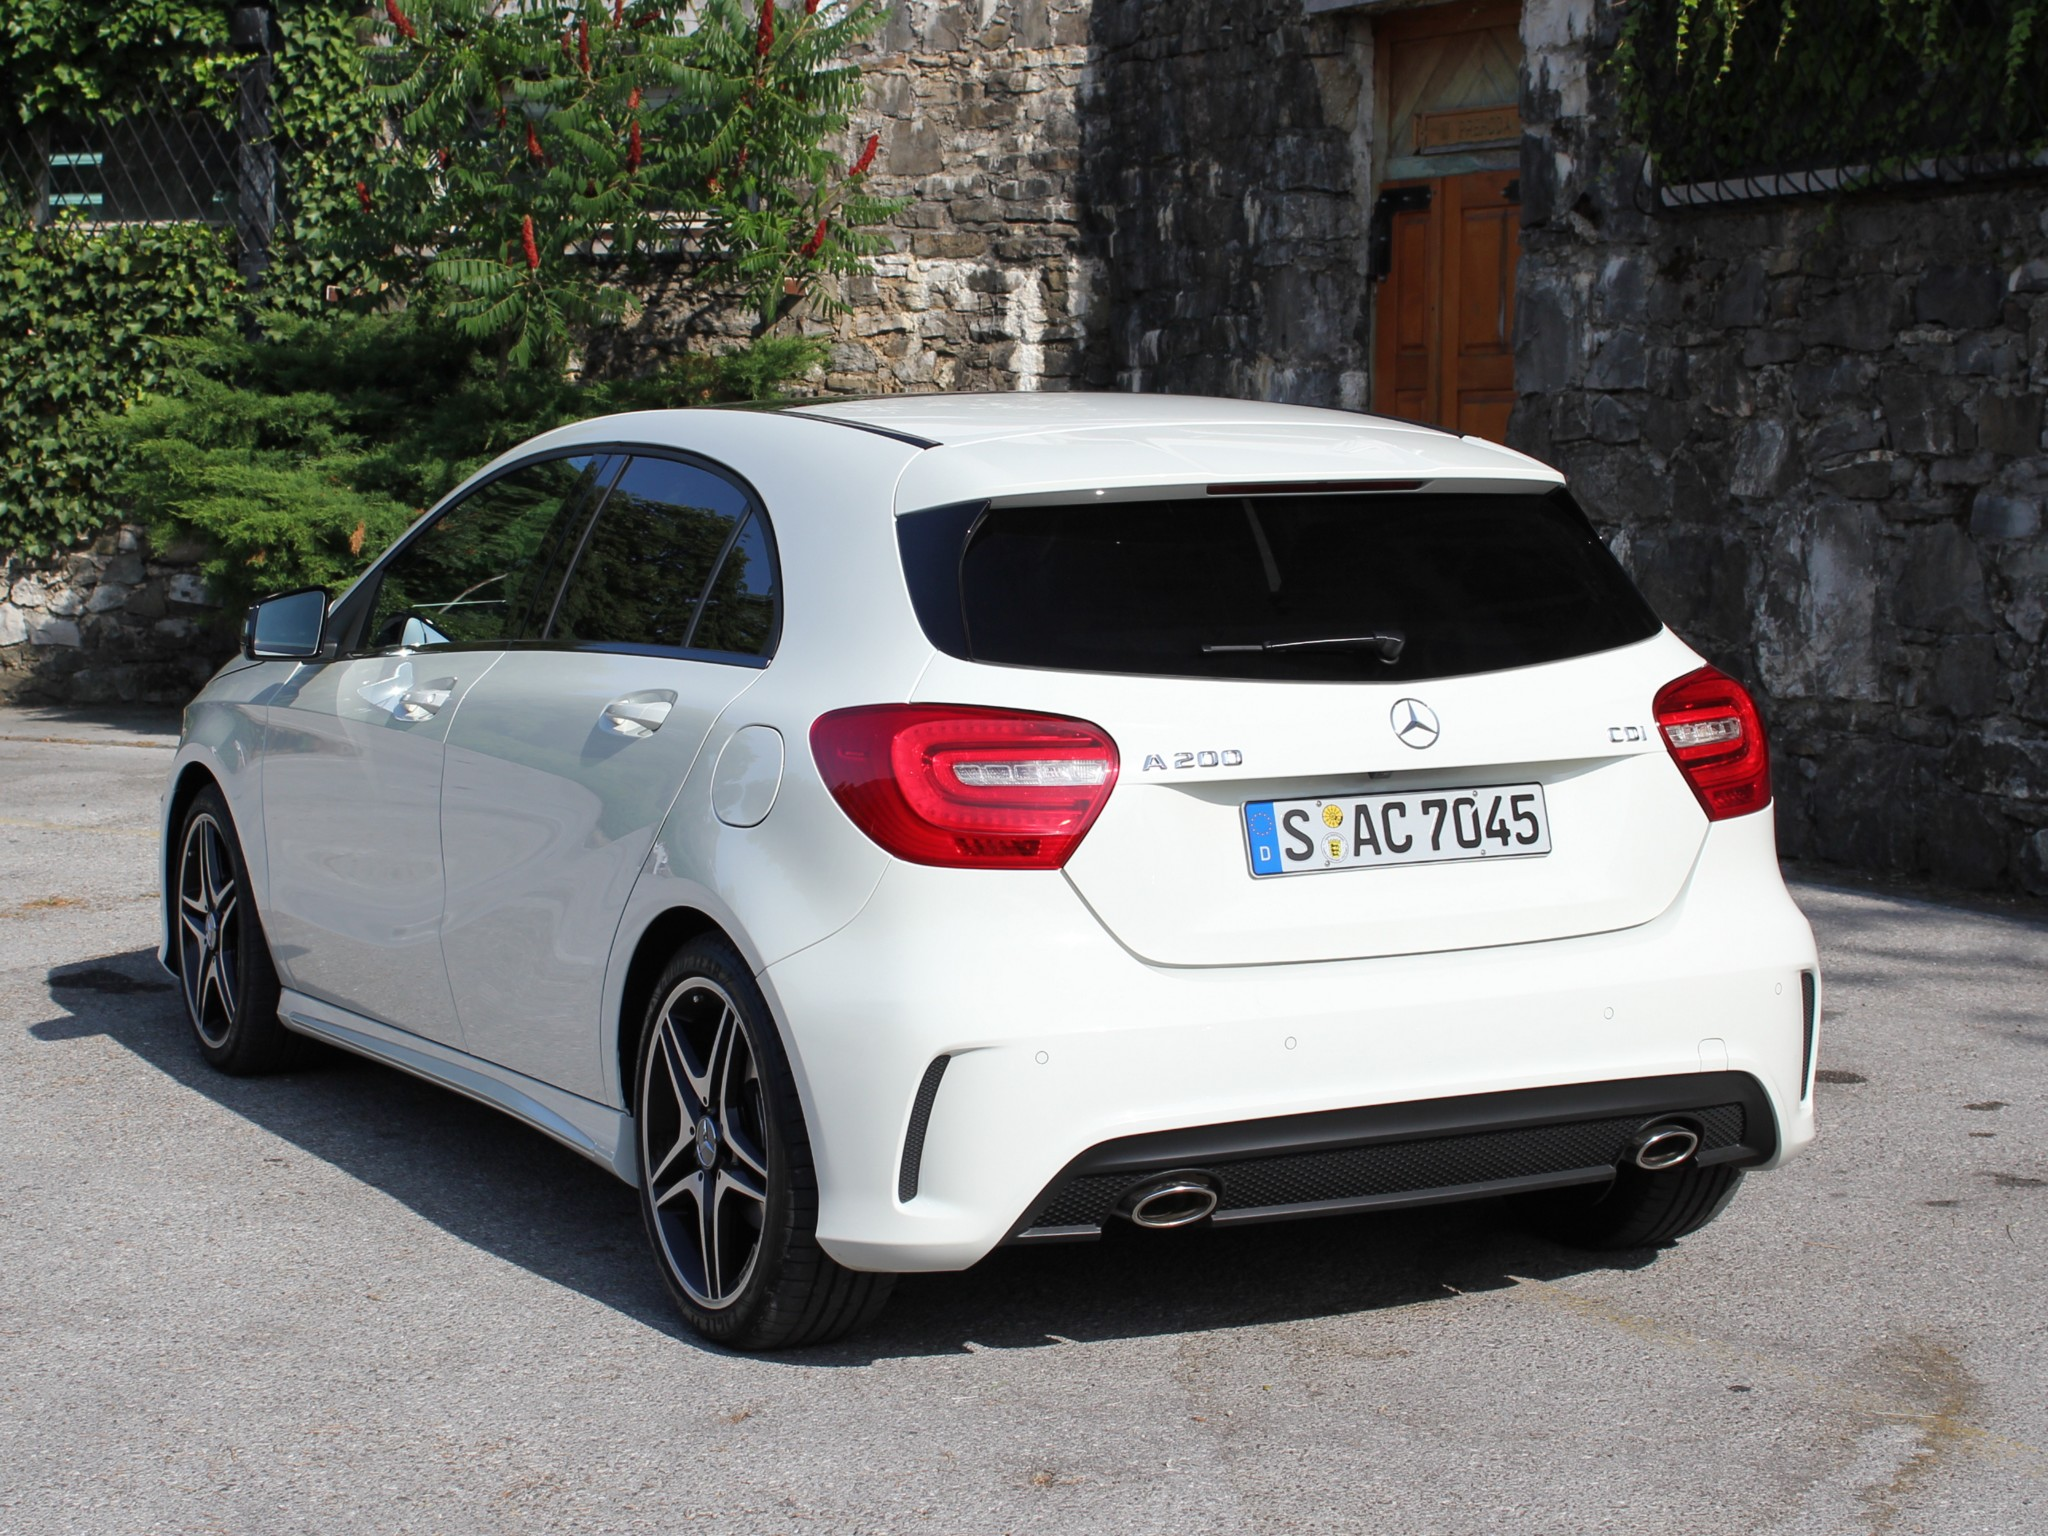 mercedes a200 cdi amg sport package w176 2012 mercedes a200 cdi amg sport package w176 2012. Black Bedroom Furniture Sets. Home Design Ideas